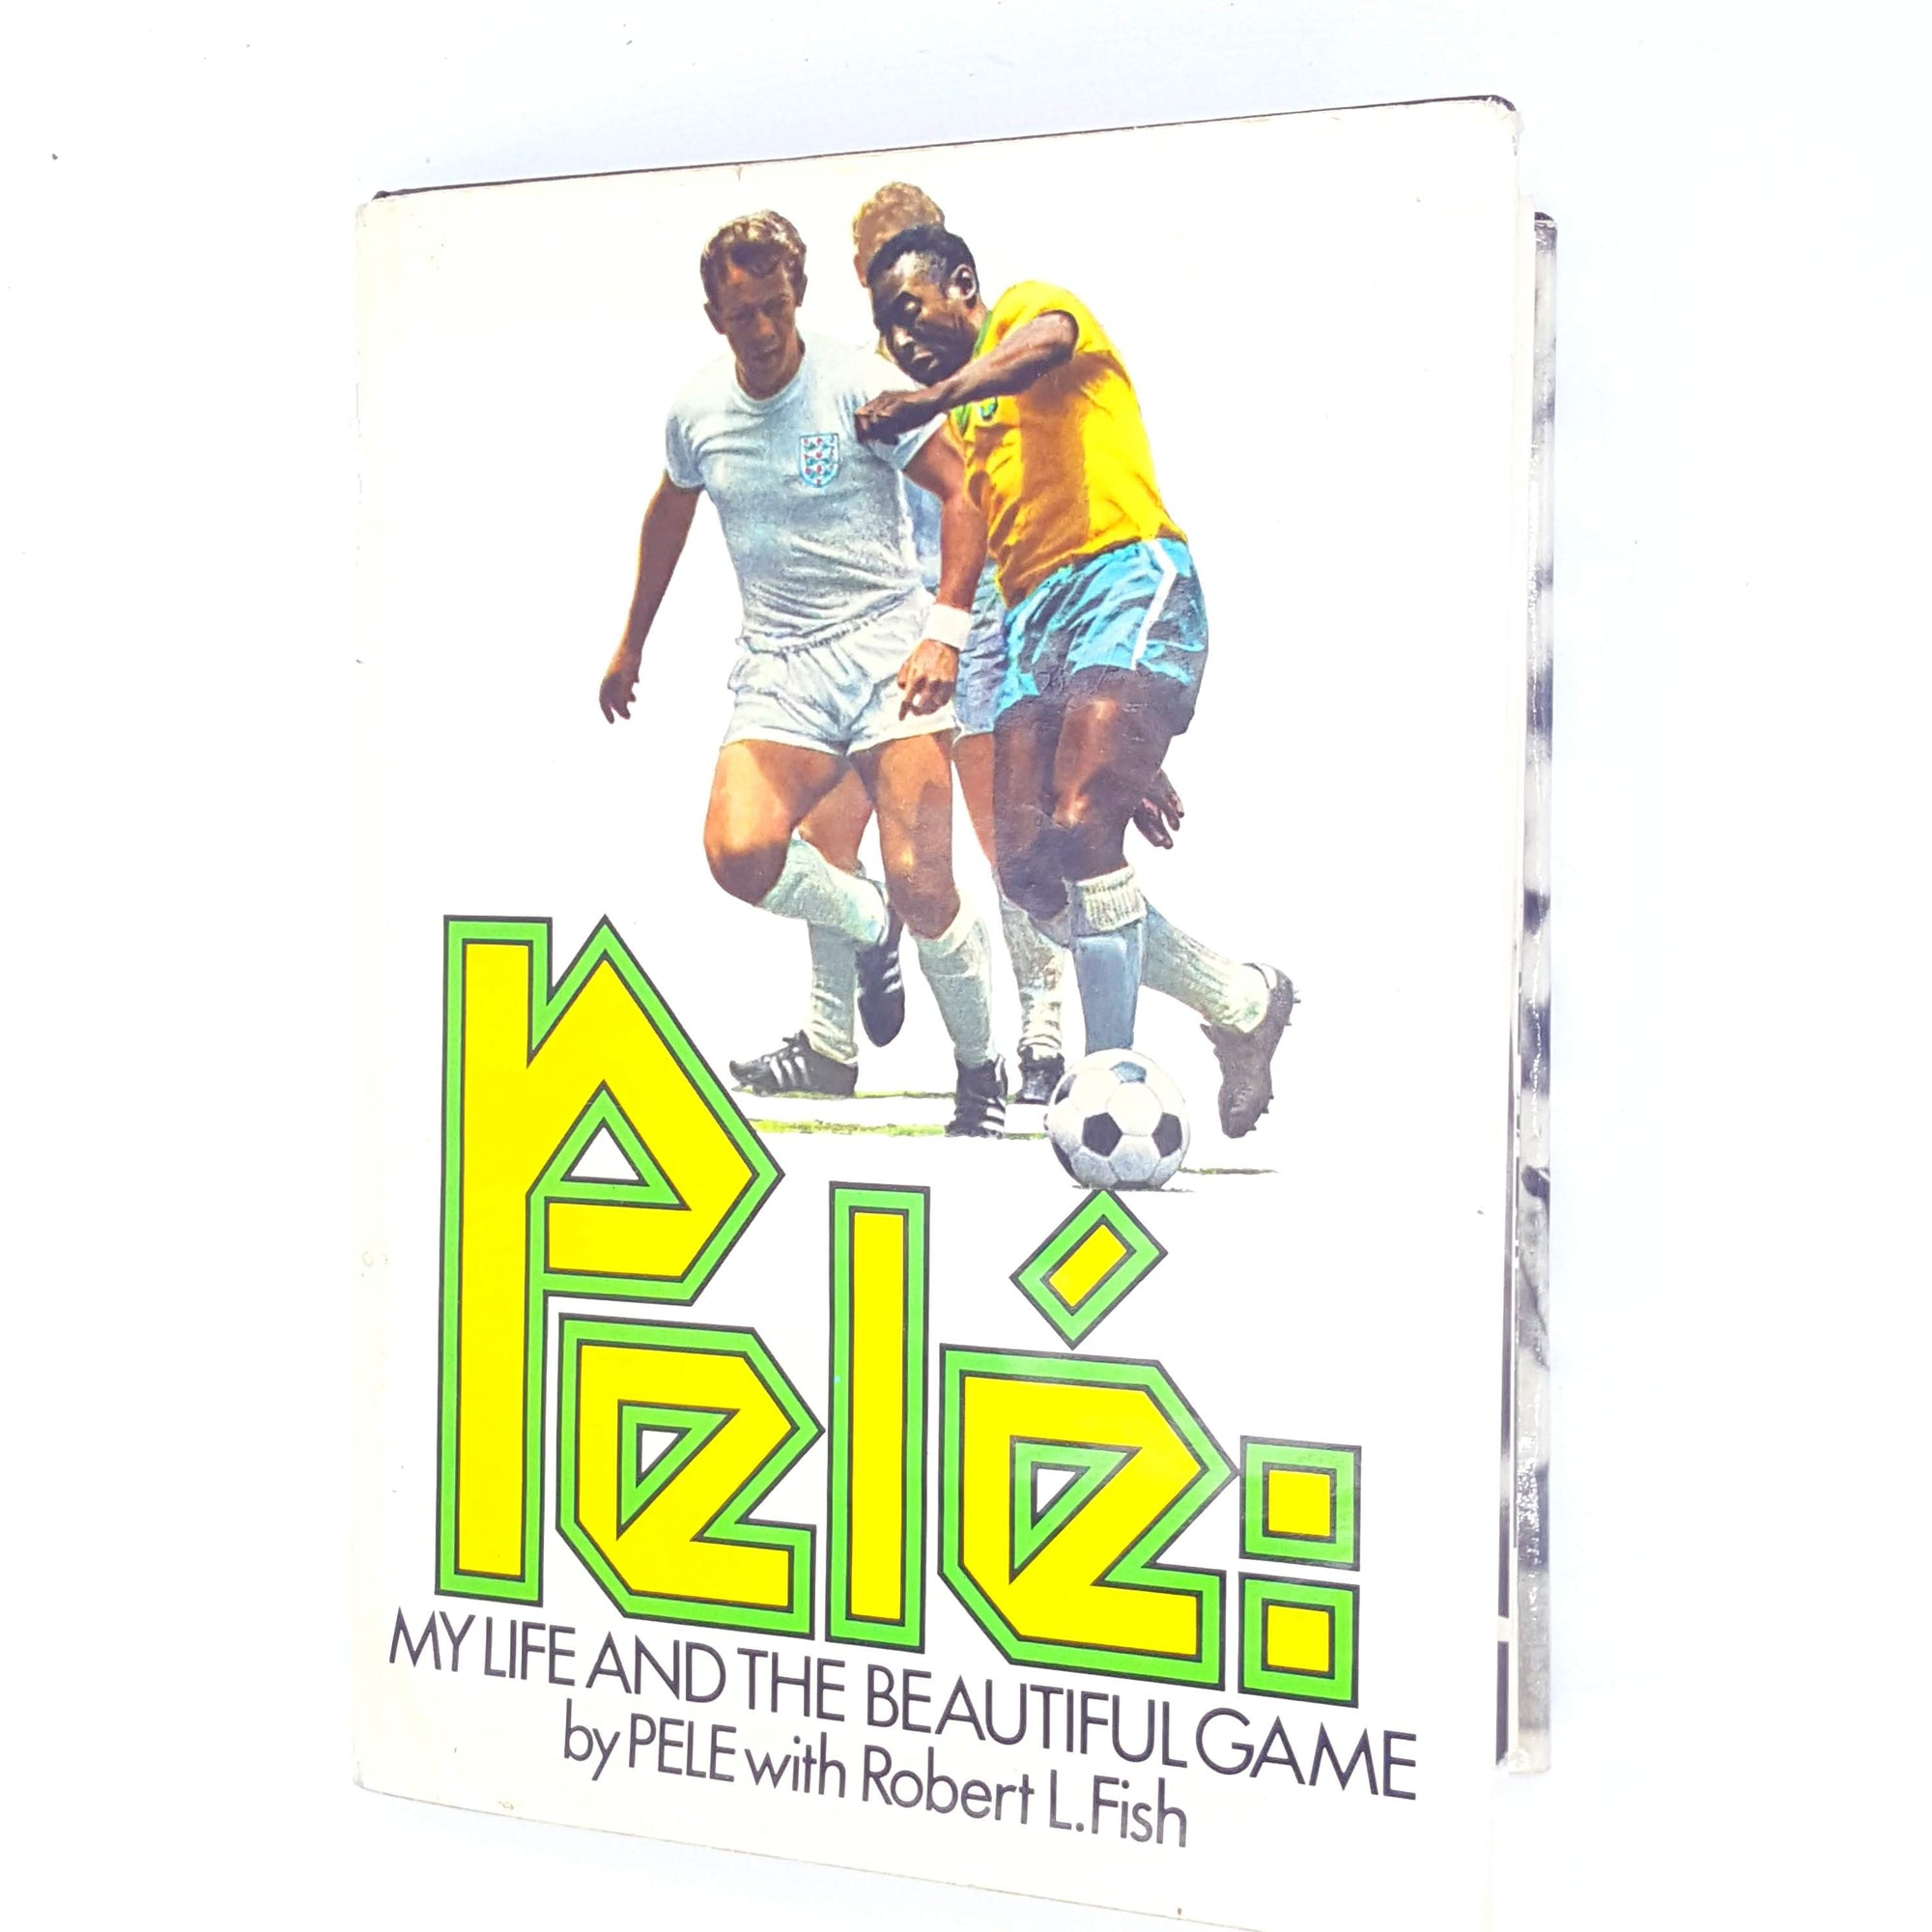 Pelé: My Life and the Beautiful Game by Pelé with Robert L. Fish 1977